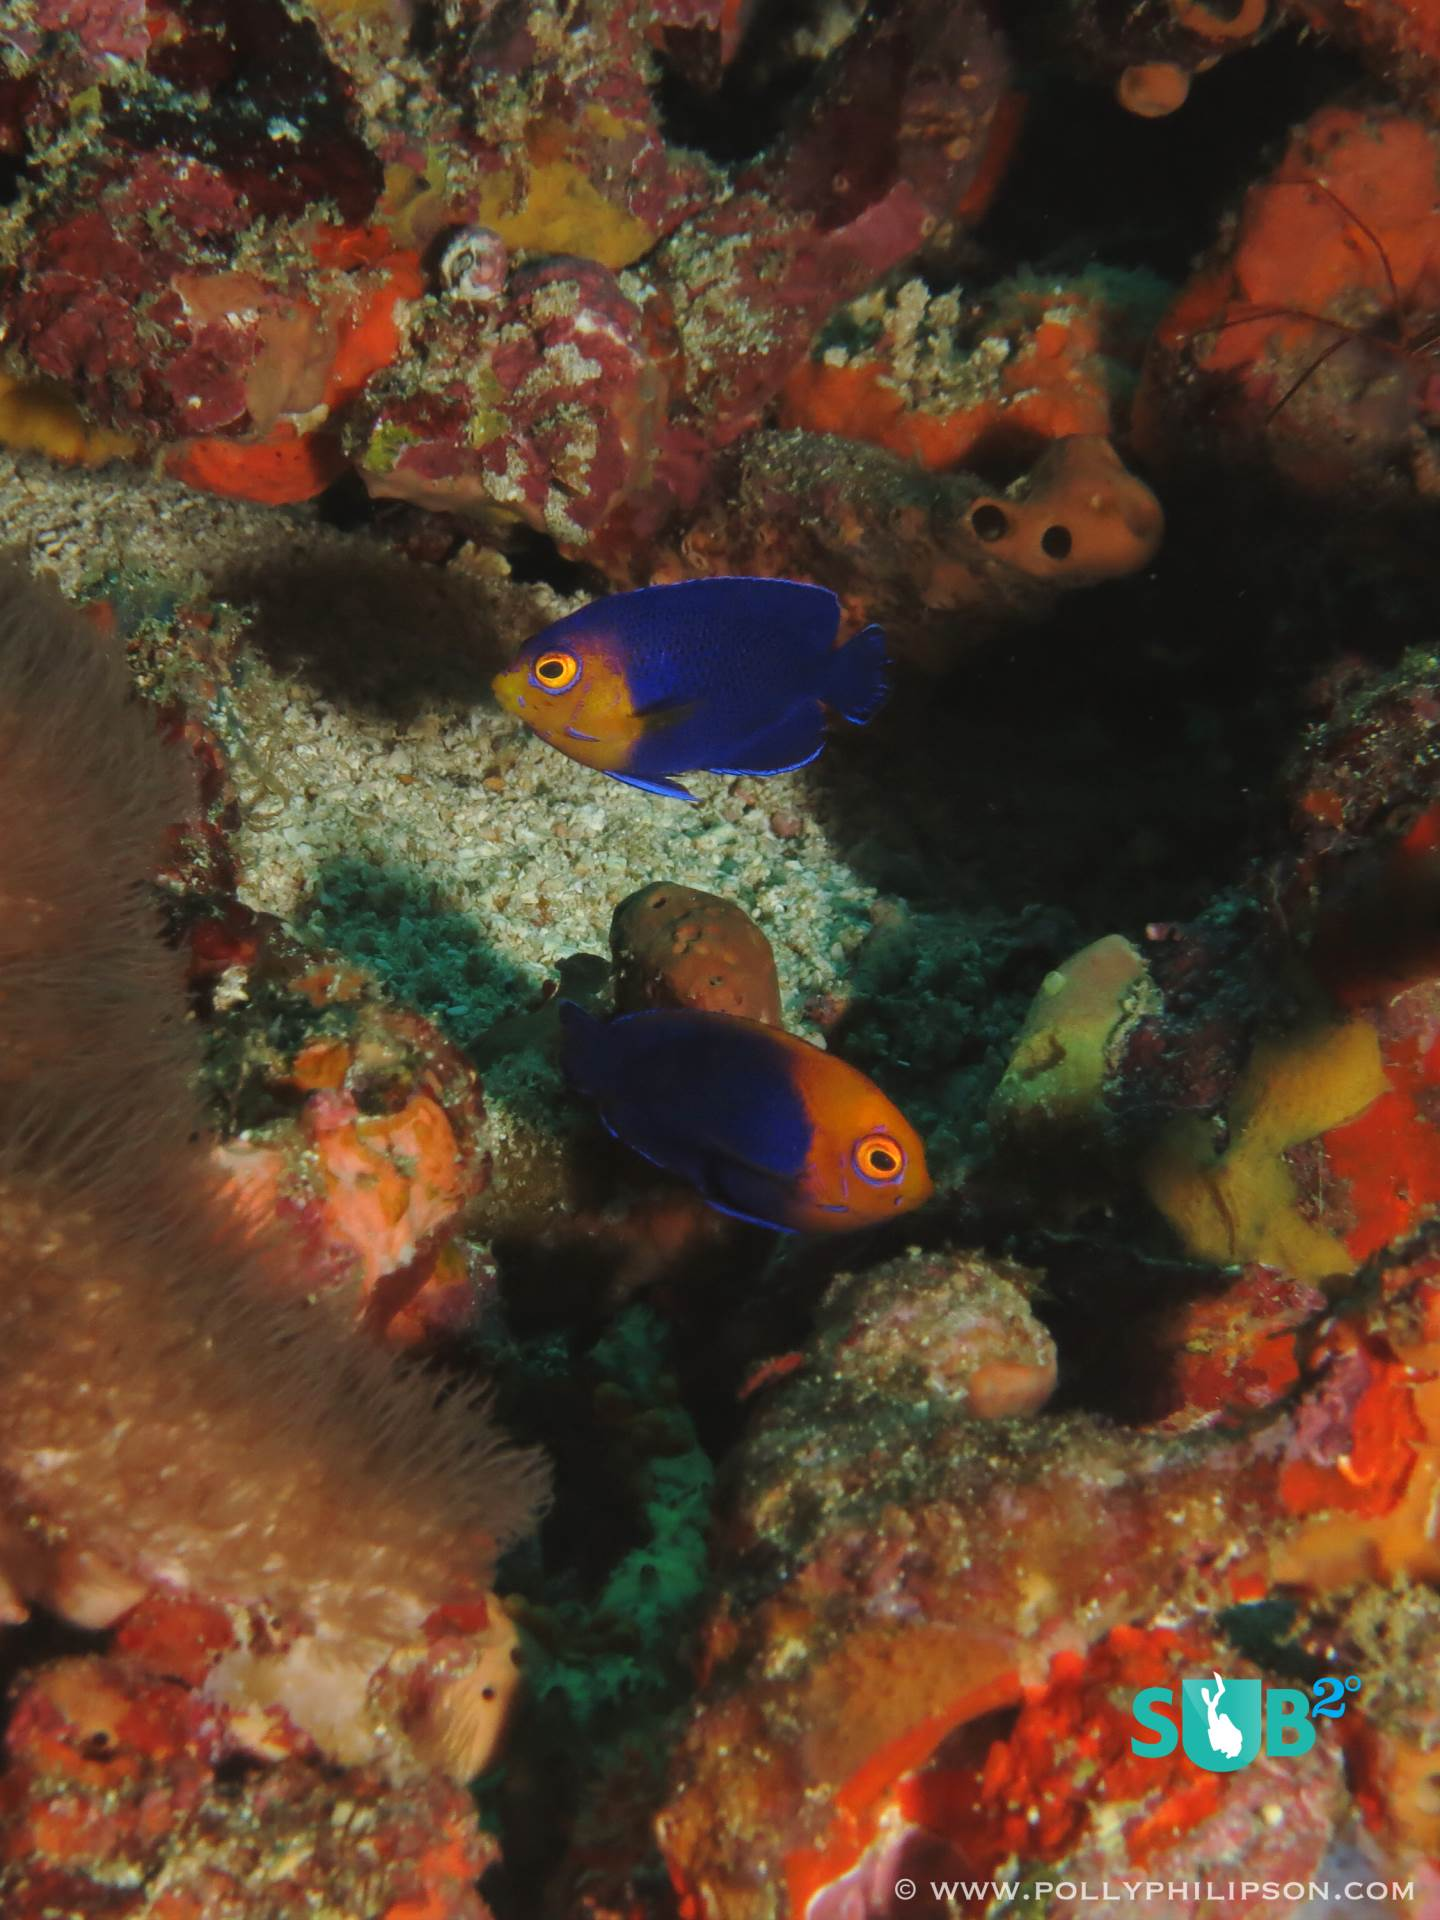 Cherubfish and flameback angelfish flutter around the seabed with the bicolour damselfish.